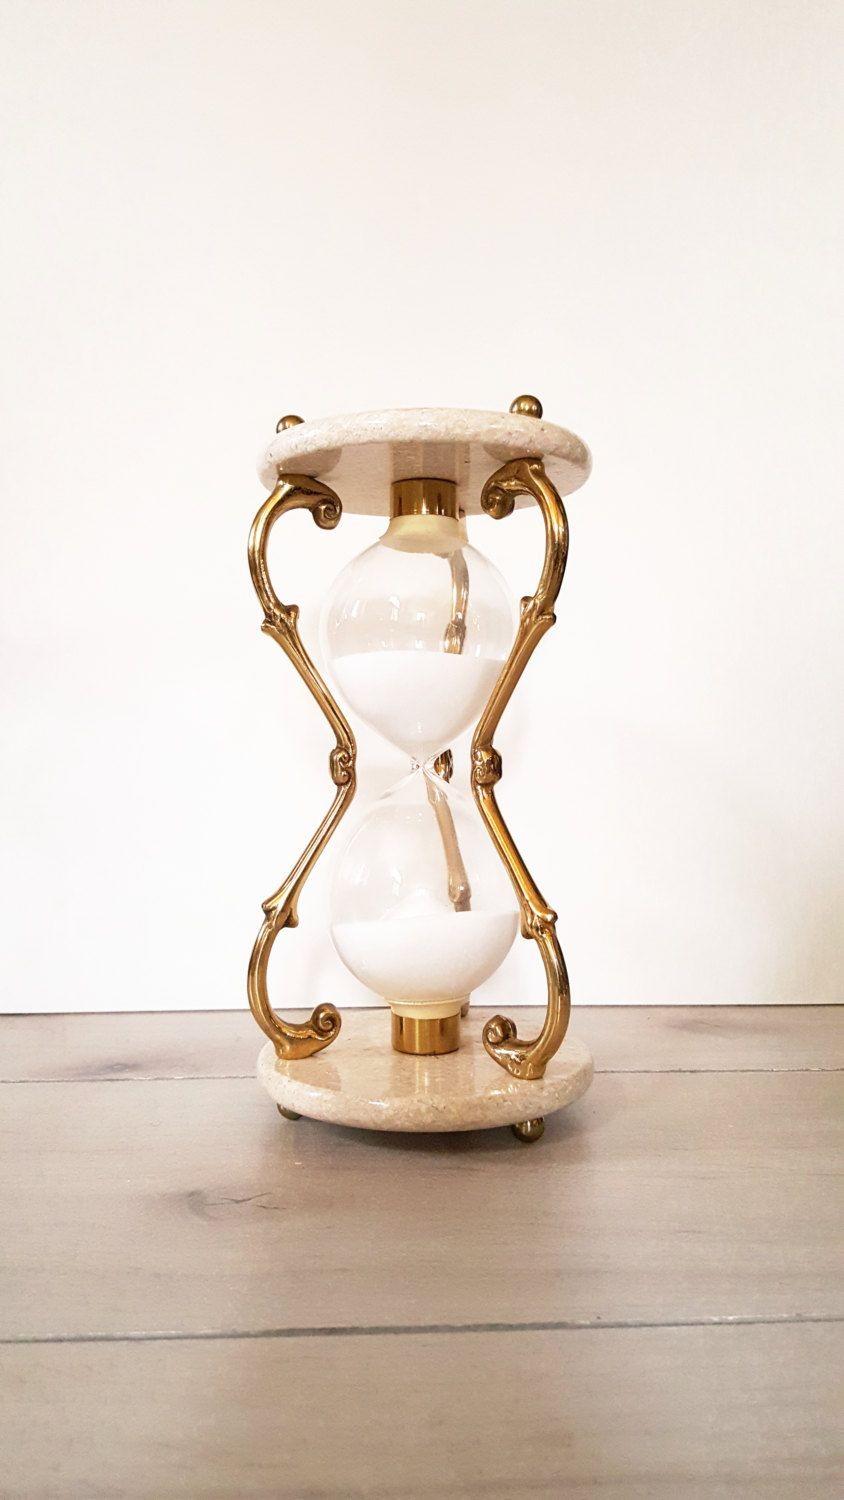 sand timer art. vintage hourglass beige marble and brass sand hour glass timer art